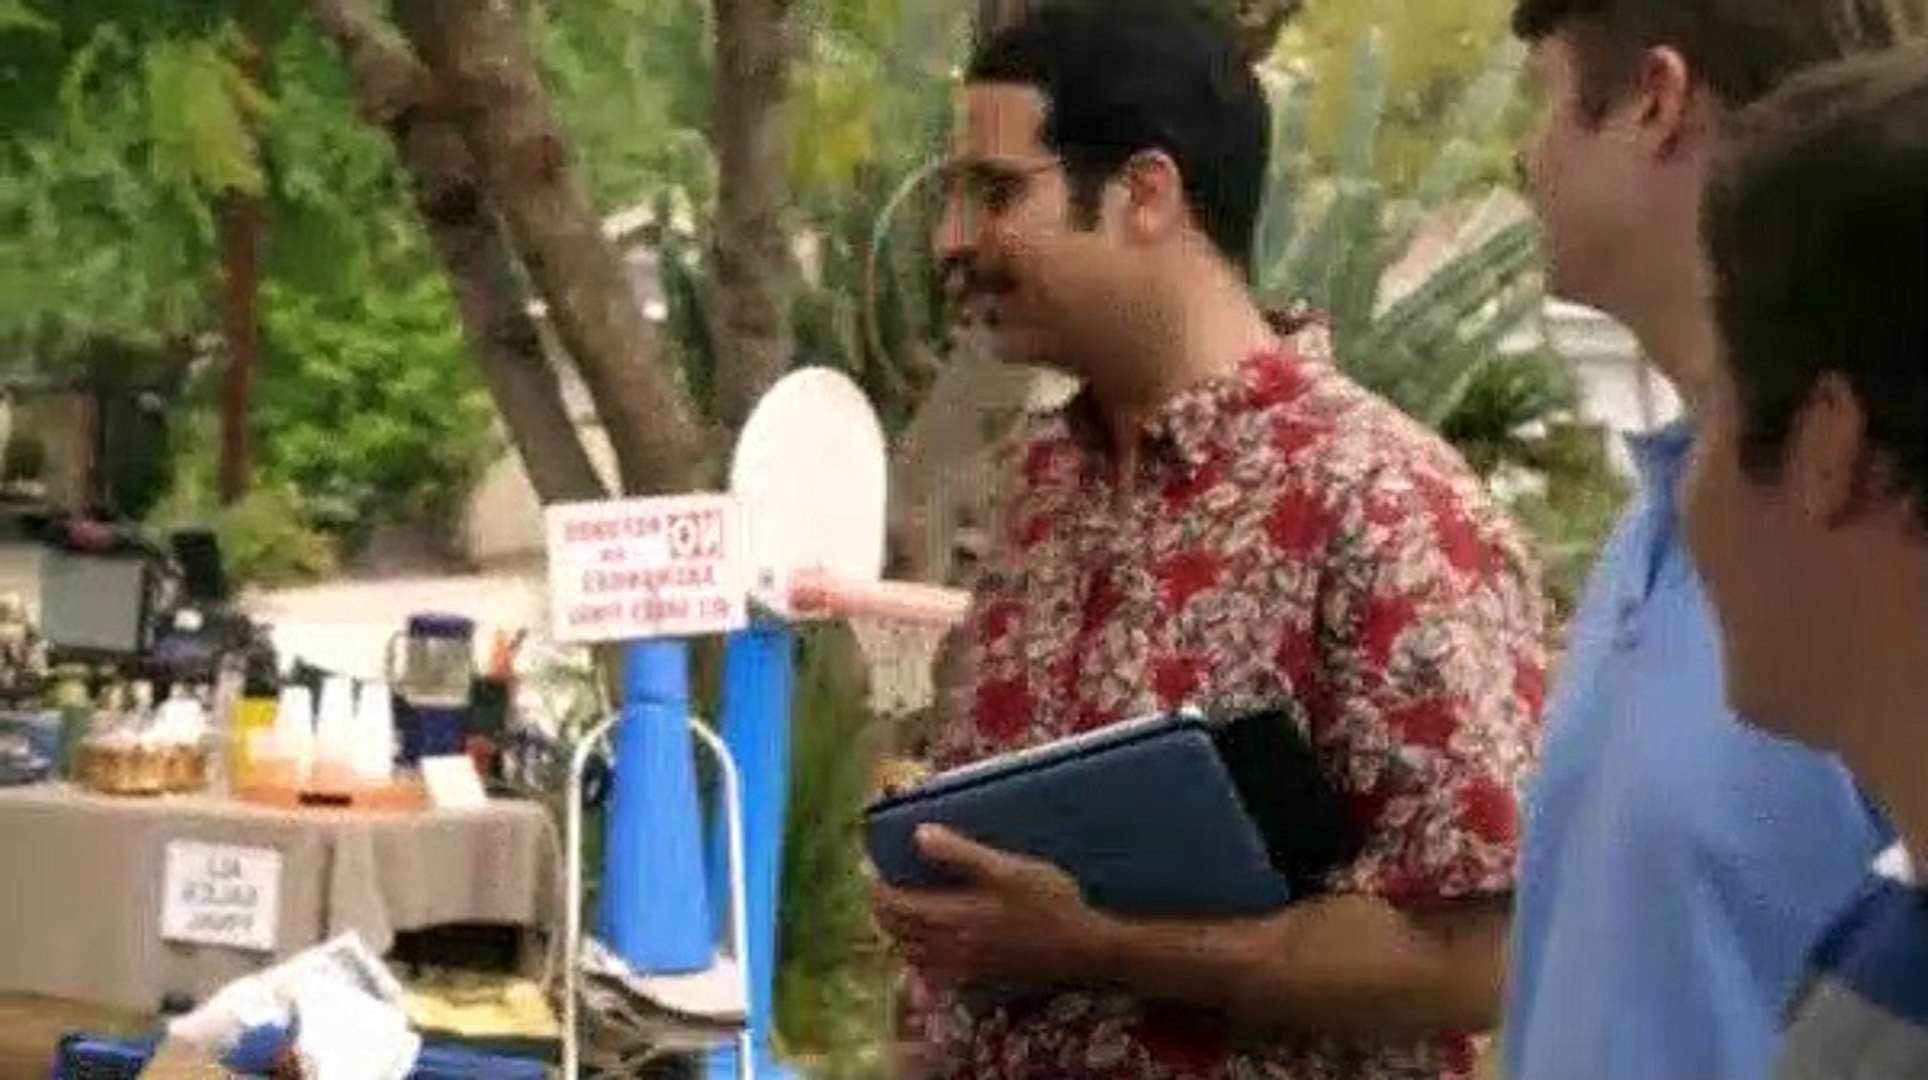 Workaholics S03E04 - To Kill A Chupacabraj